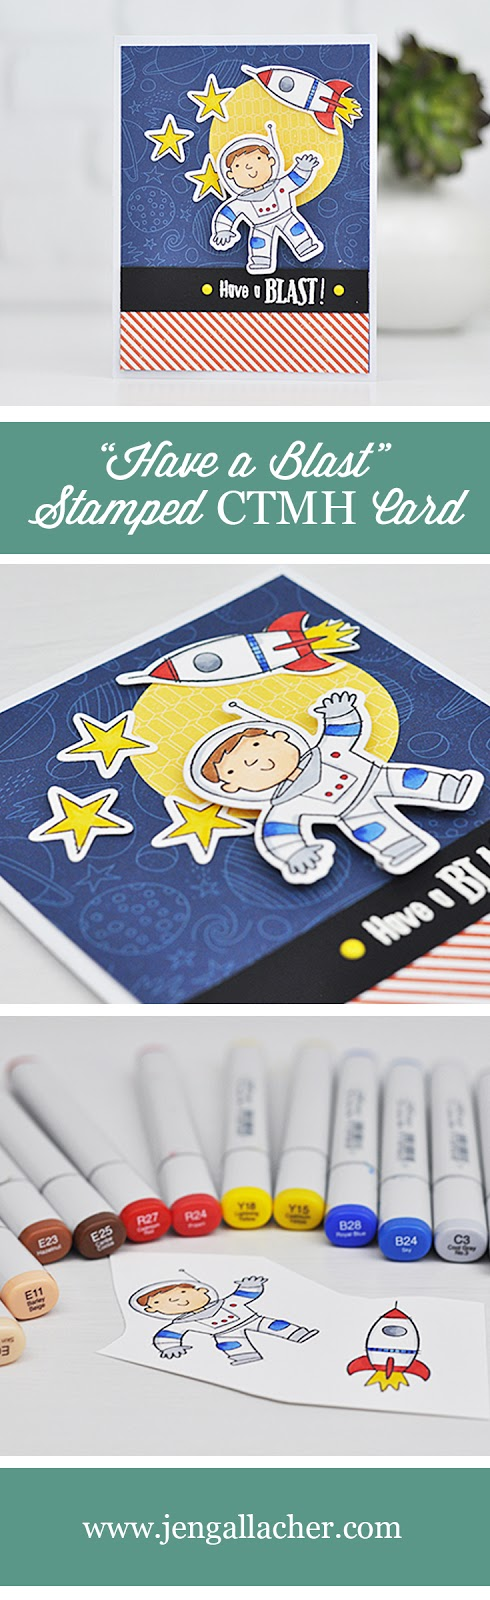 """Have a Blast"" stamped astronaut card for CTMH by Jen Gallacher. #stamping #diecutting #CTMH #jengallacher"